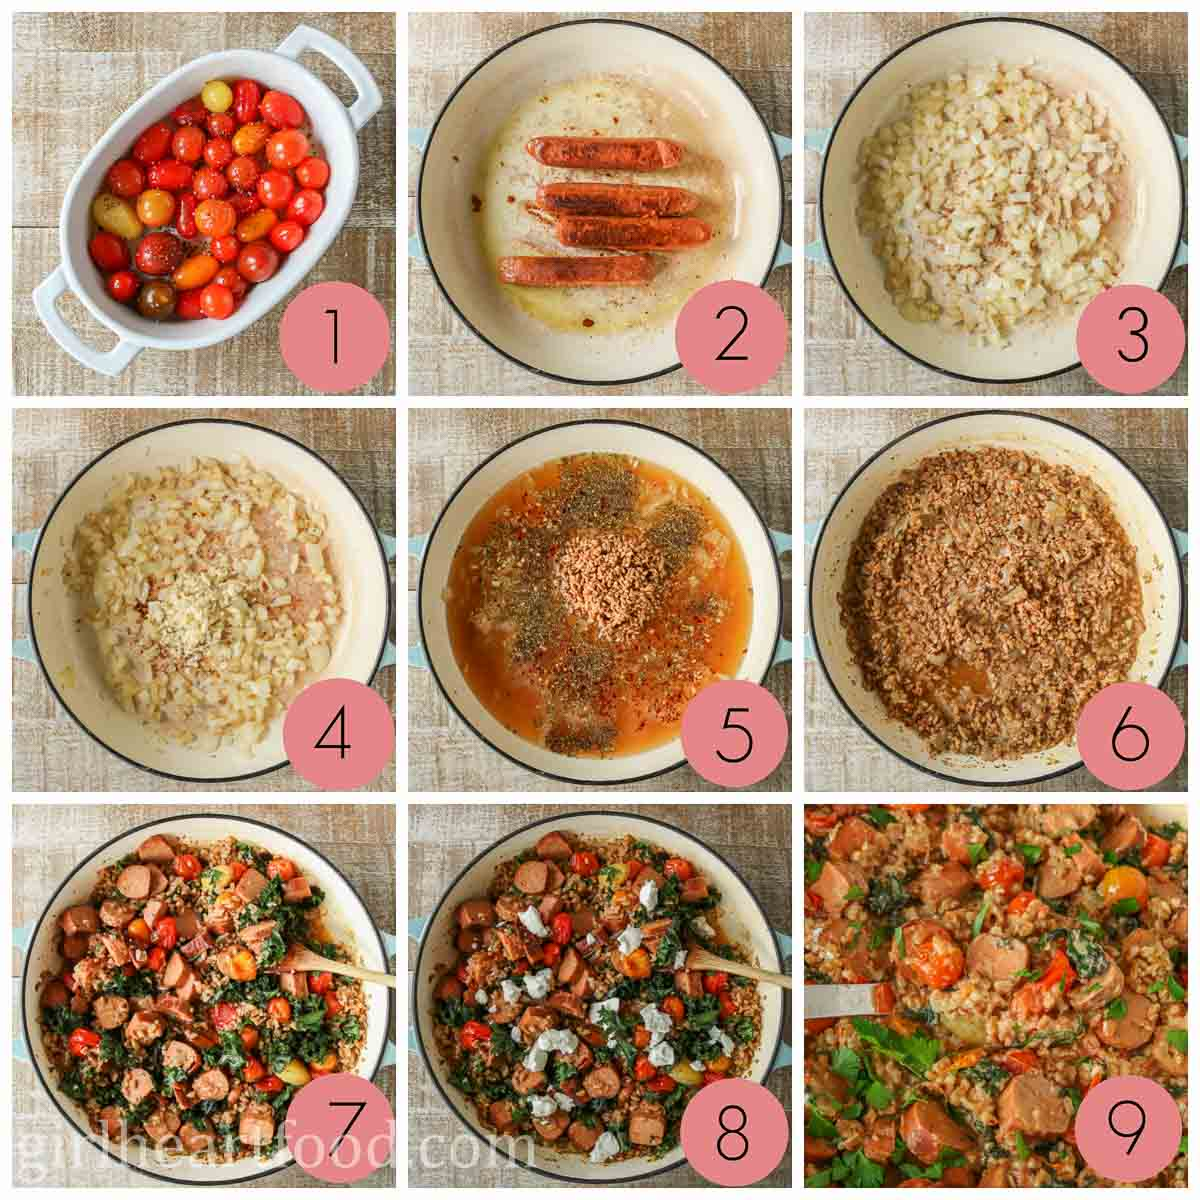 Collage of steps to make a farro sausage recipe with vegetables and goat cheese.